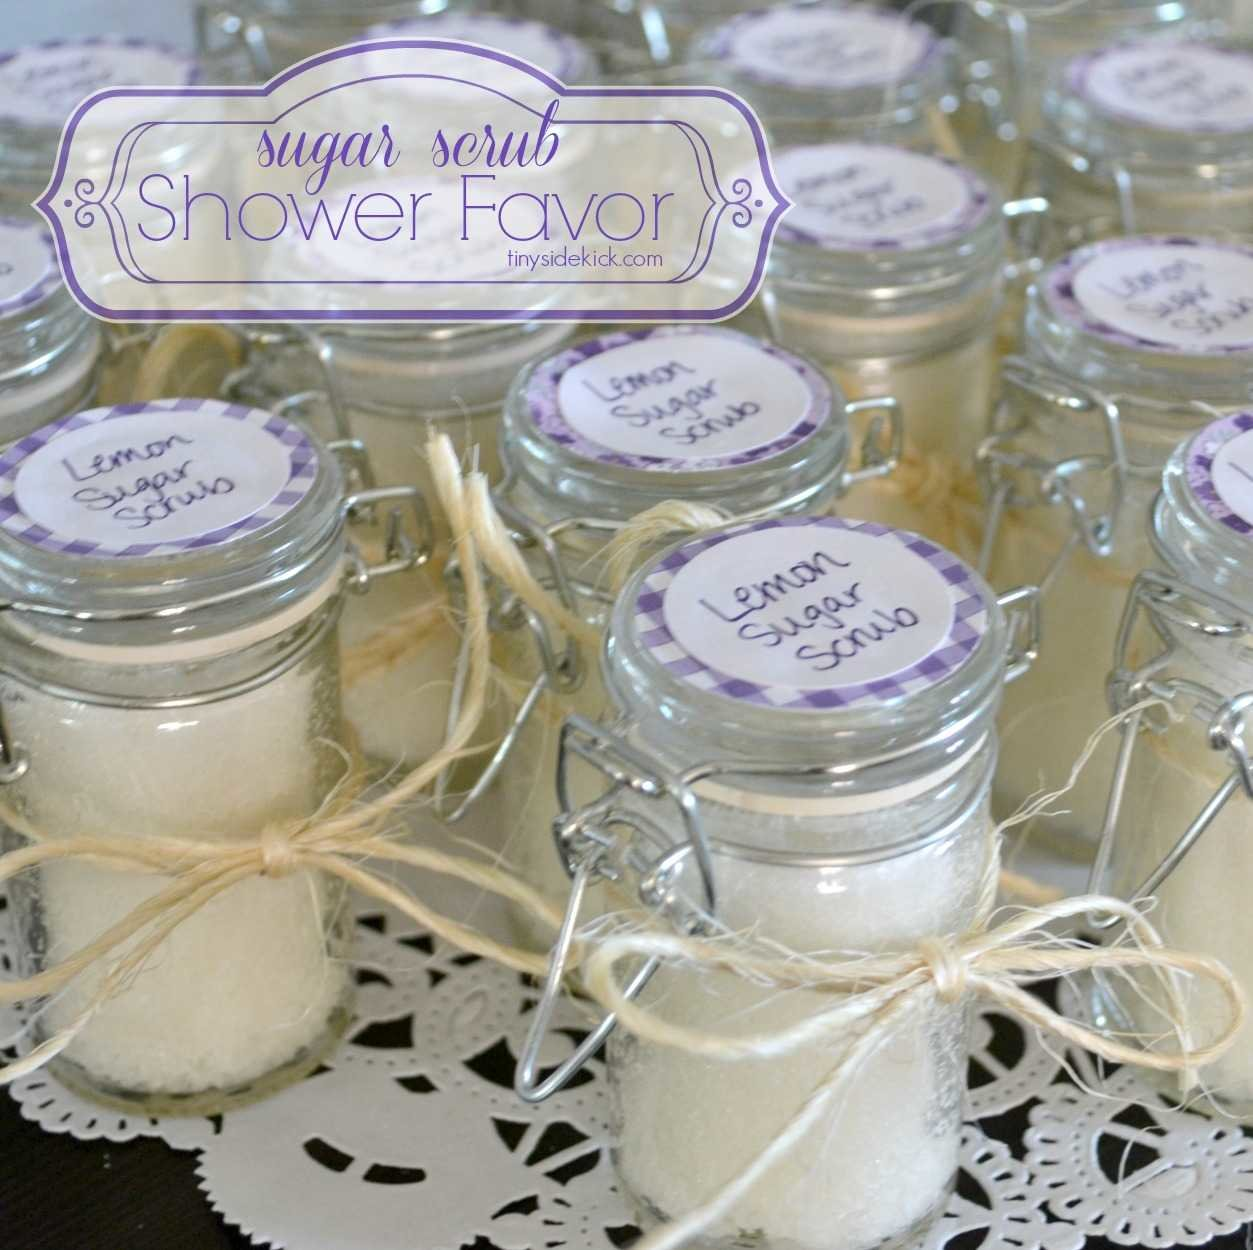 archives page party diy design ideas favors shower favor baby of